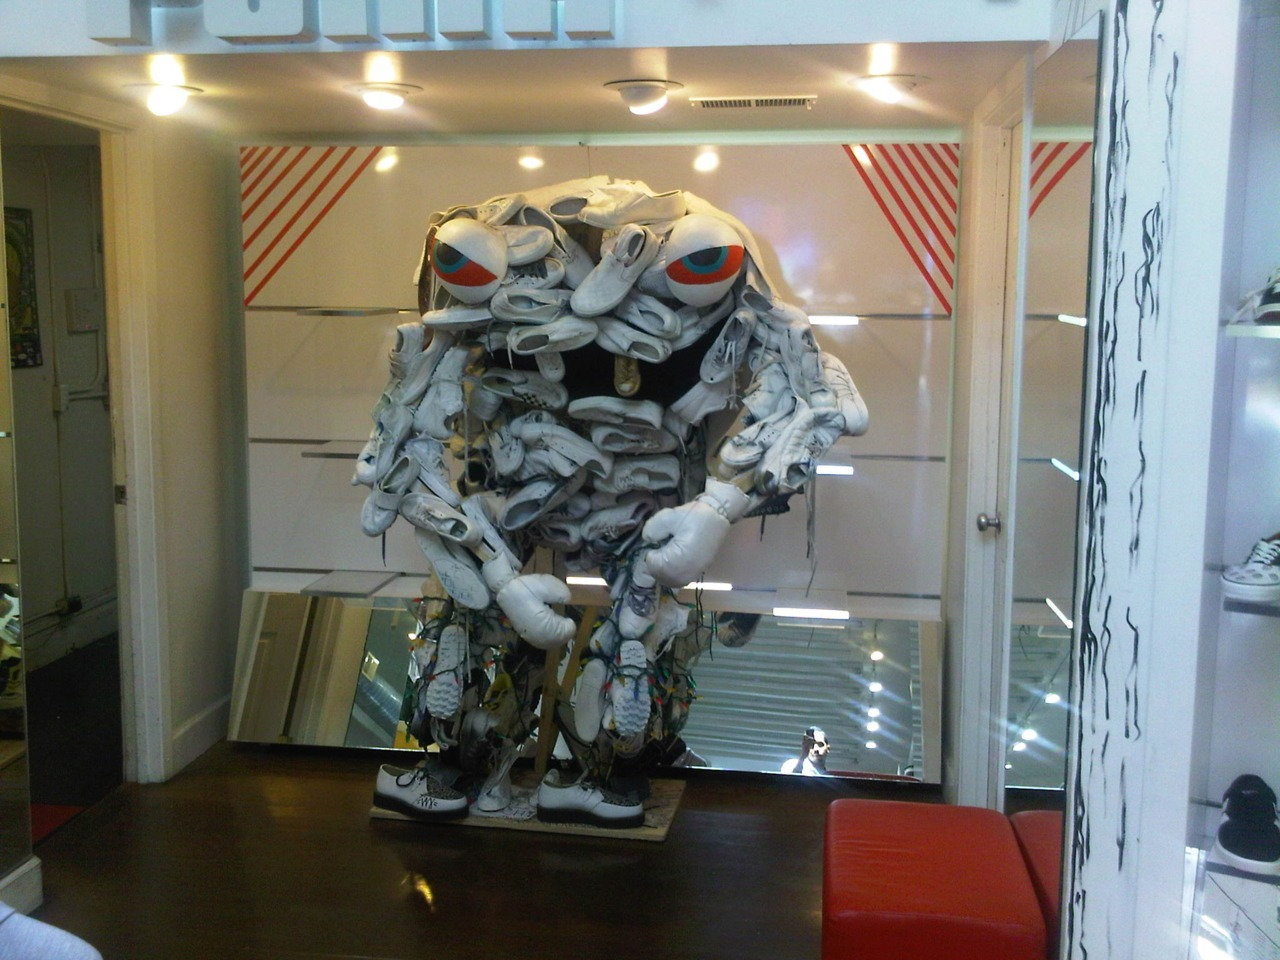 Good Idea:   I've always liked the appeal of some fresh Puma's . I was shopping and saw this monster made out of Puma's at kick spot.iii